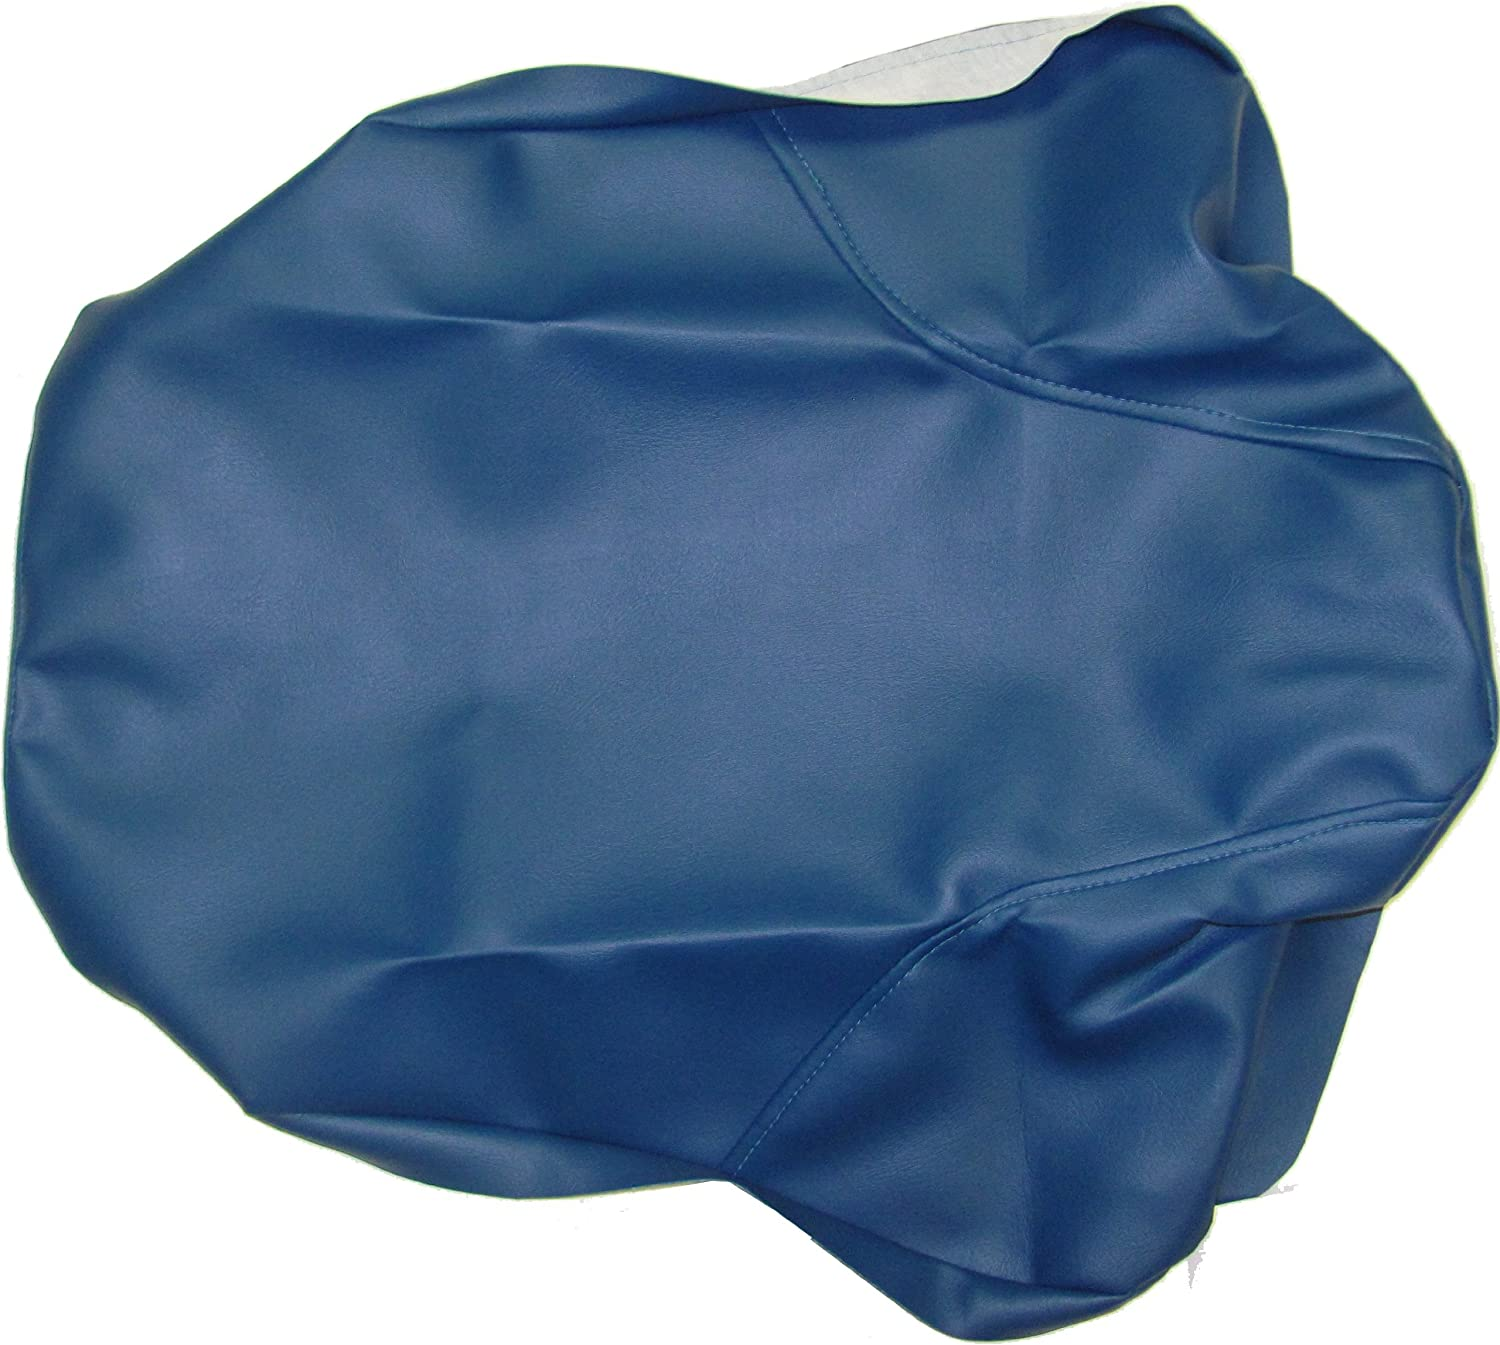 Freedom County ATV FC314 Blue Replacement Cover Seat A Free Max 82% OFF Shipping New Honda for